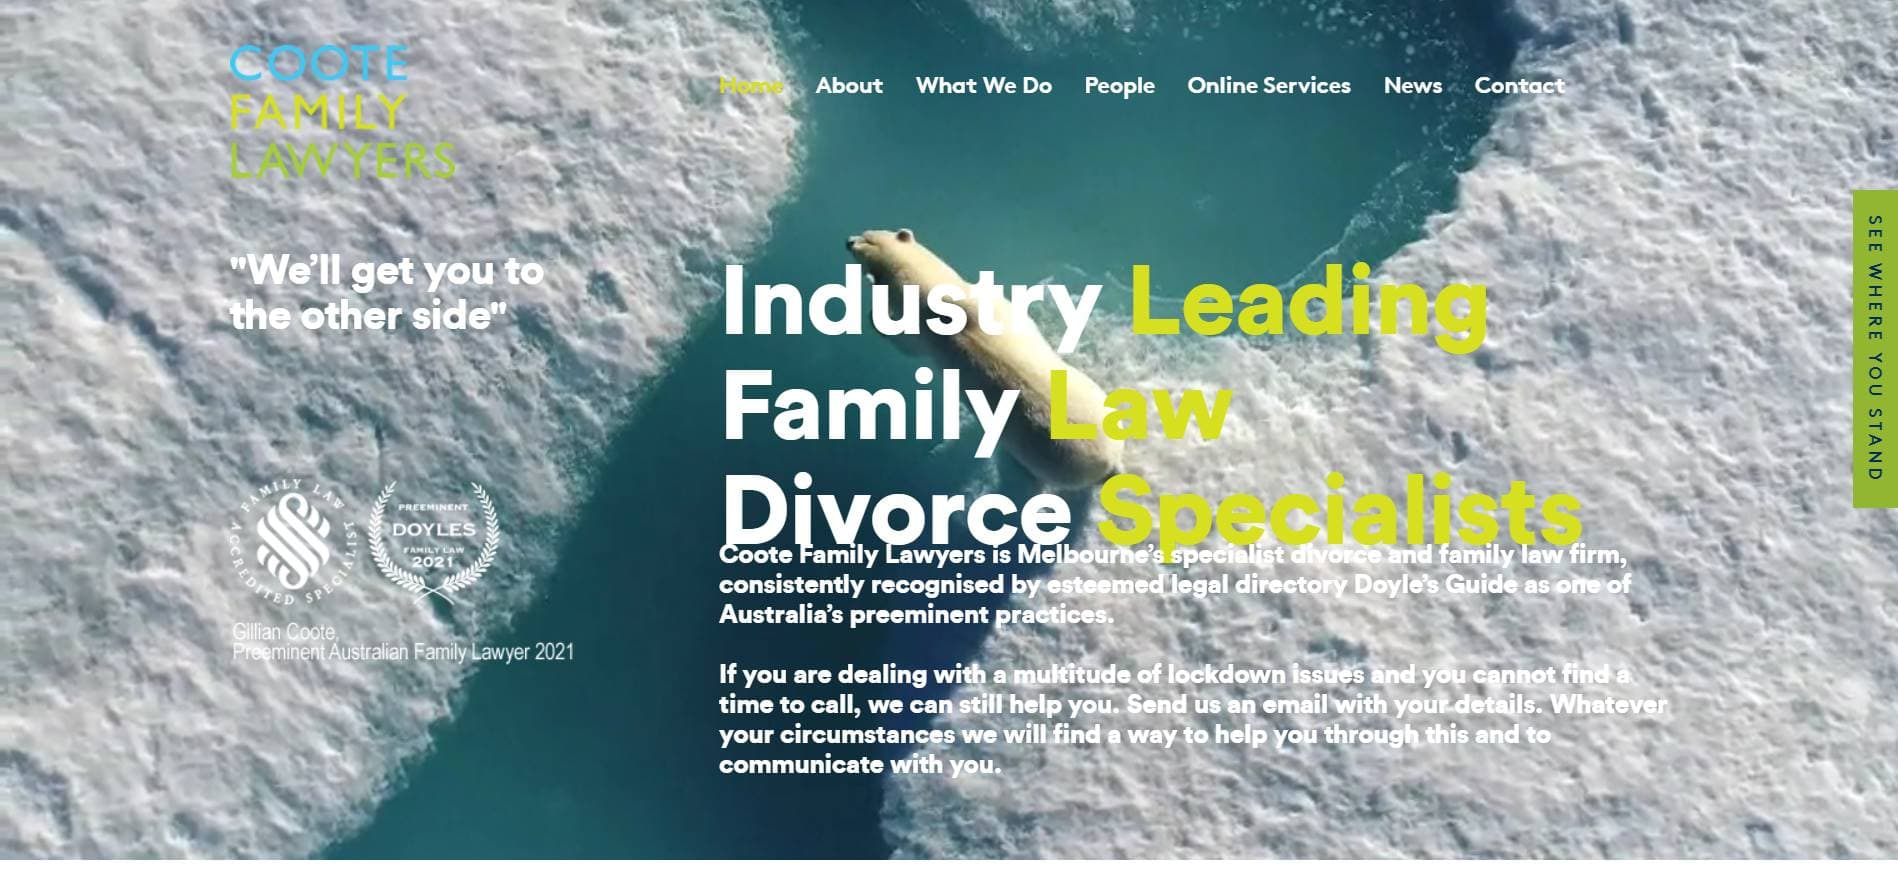 coote family lawyers